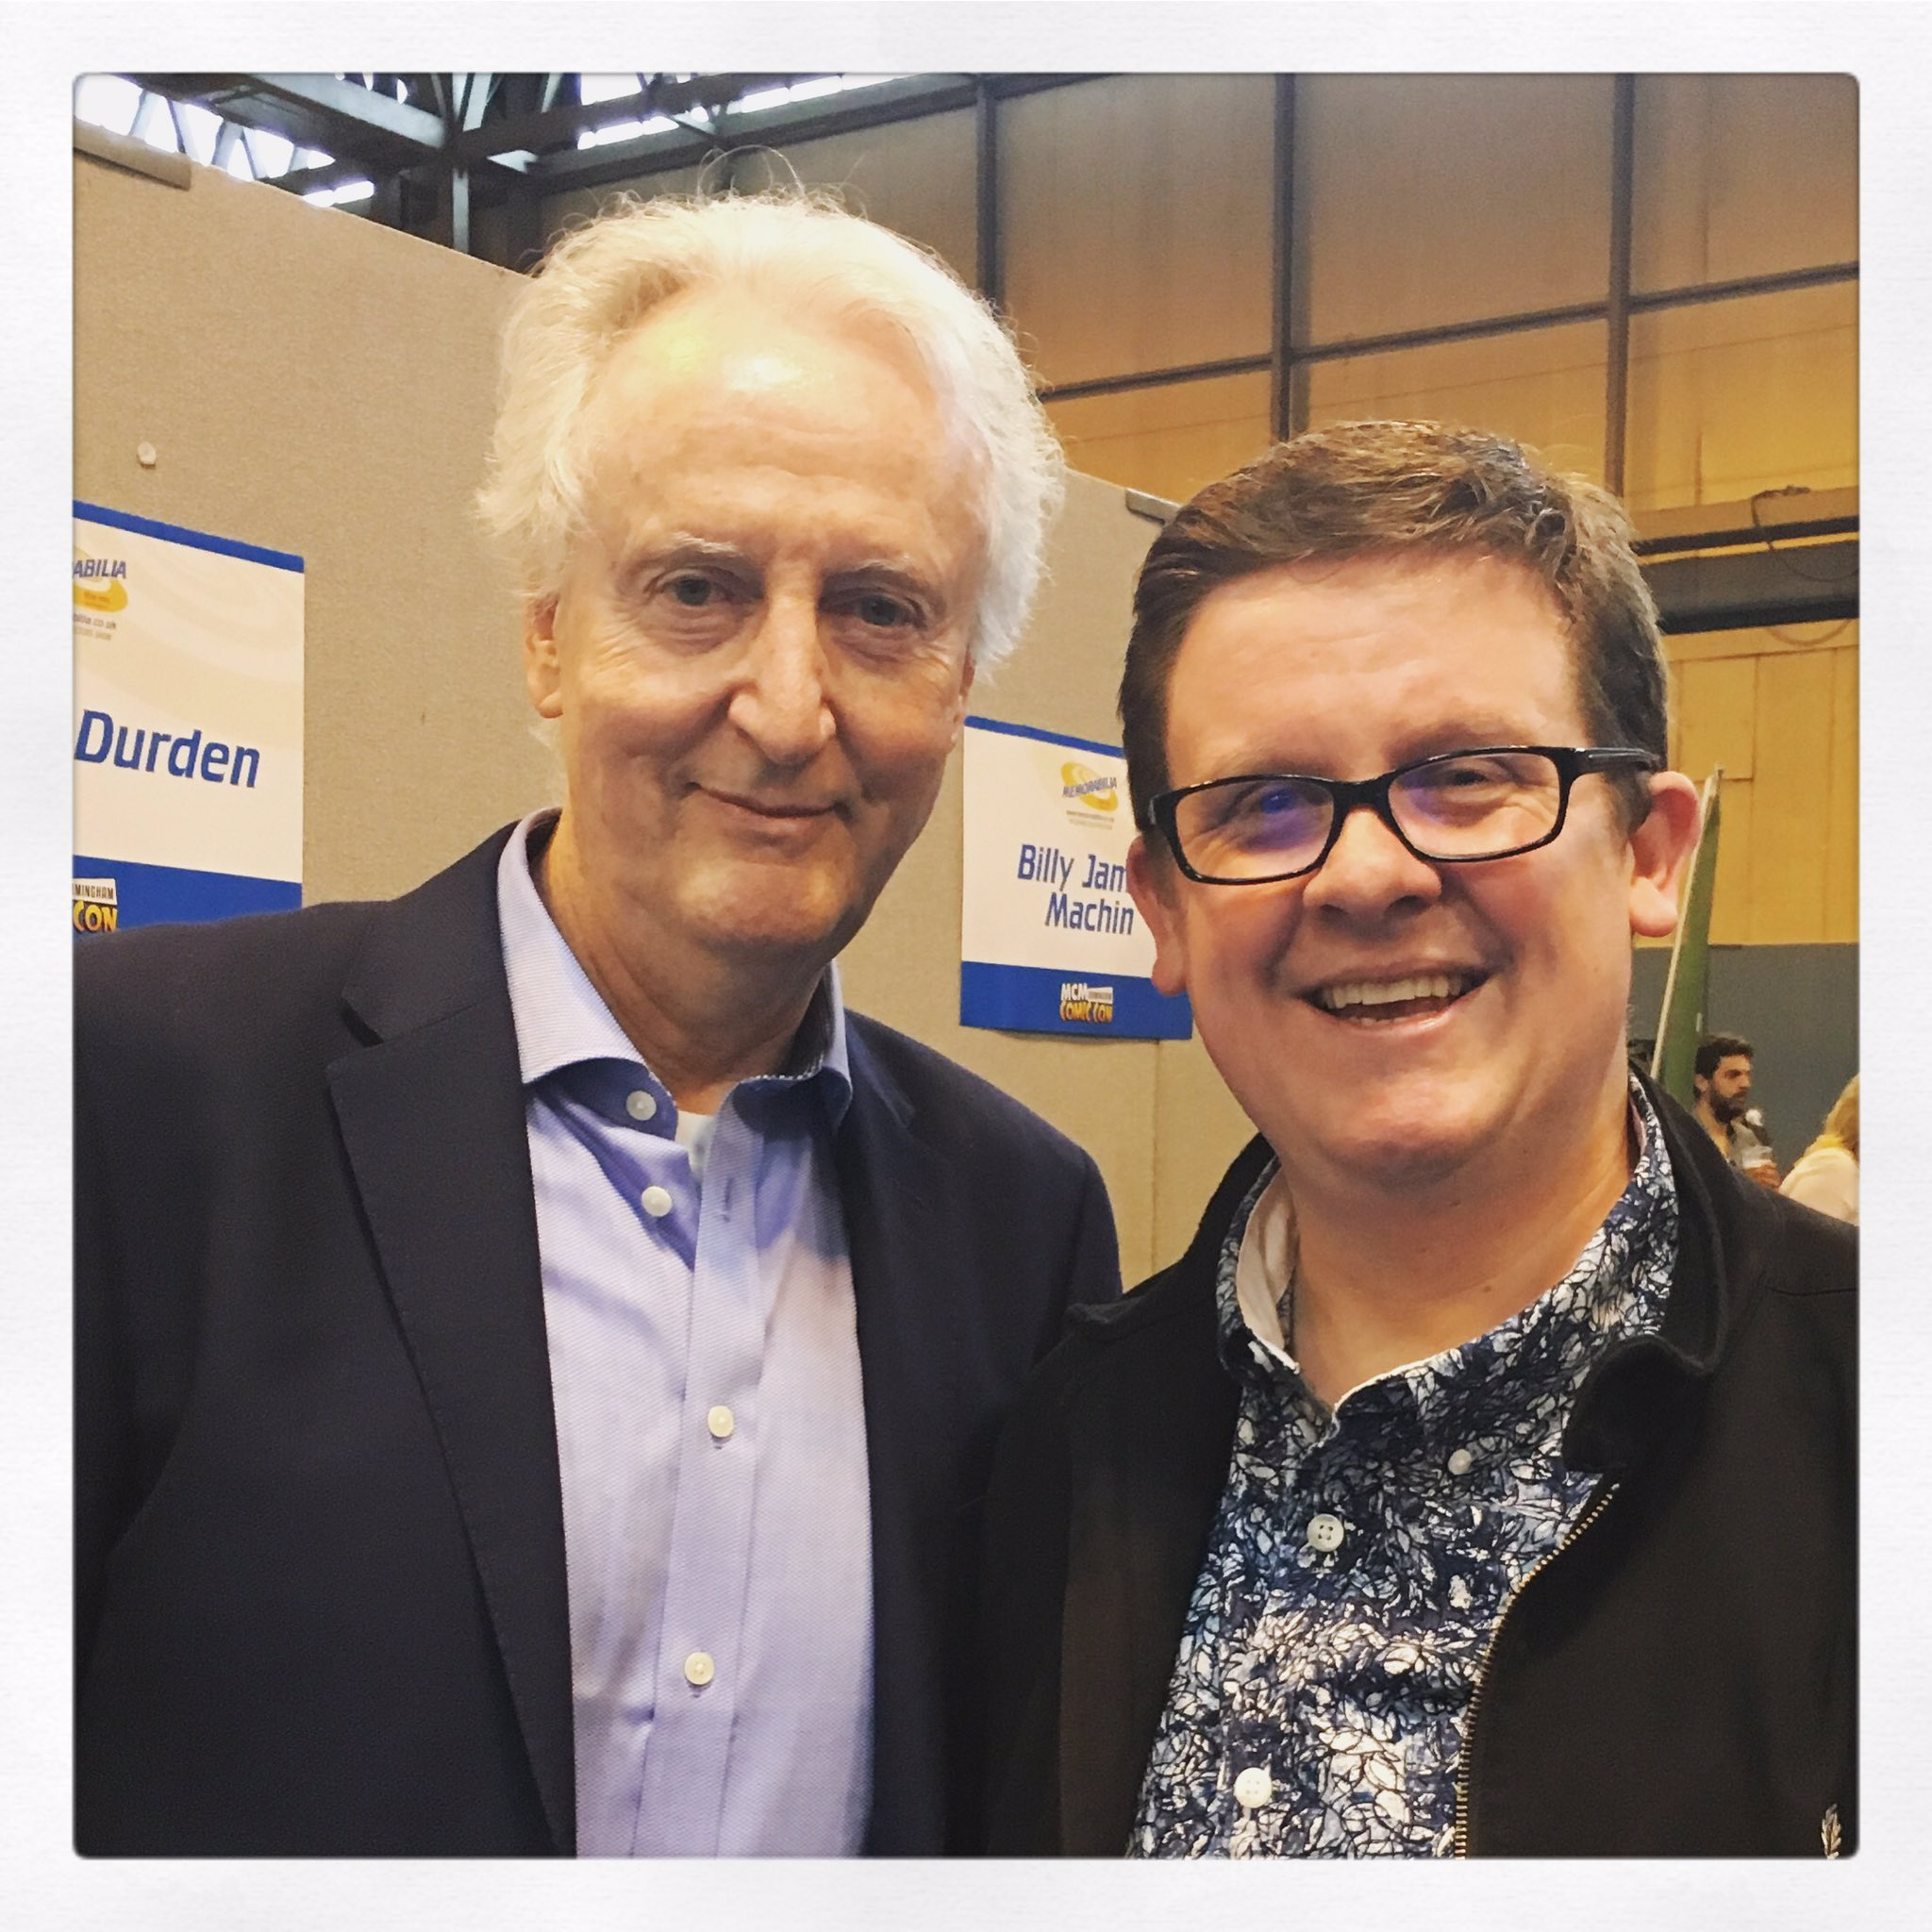 What a gent @realhughfraser is! Wonderful in Sharpe and Poirot #birminghamcomiccon https://t.co/lGZQpe7vtO